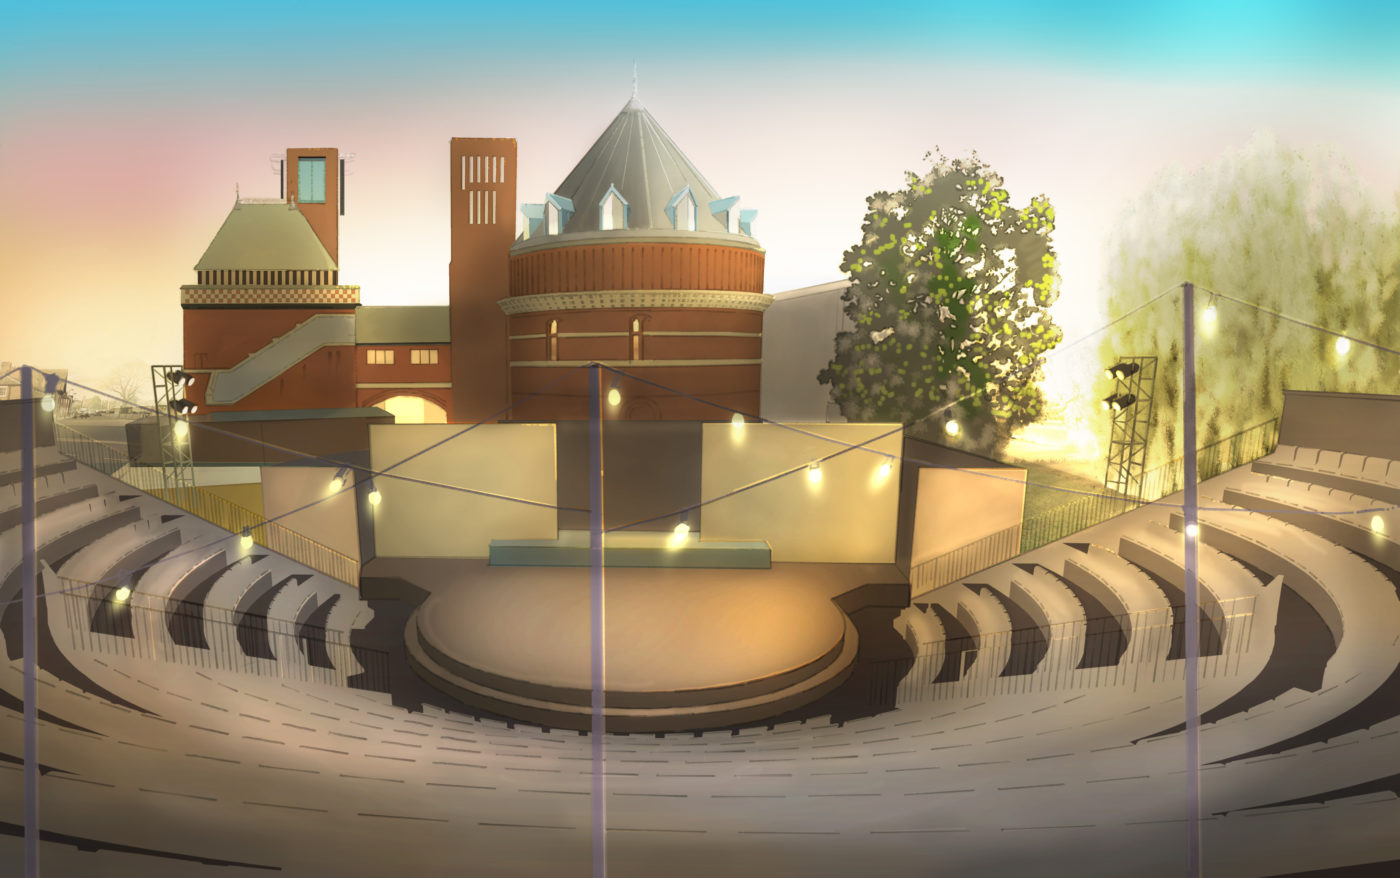 A mock-up representing the Lydia & Manfred Gorvy Garden Theatre once built. At the foreground, the stalls go down until the stage. At the back of the stage, the Royal Shakespeare Theatre building.